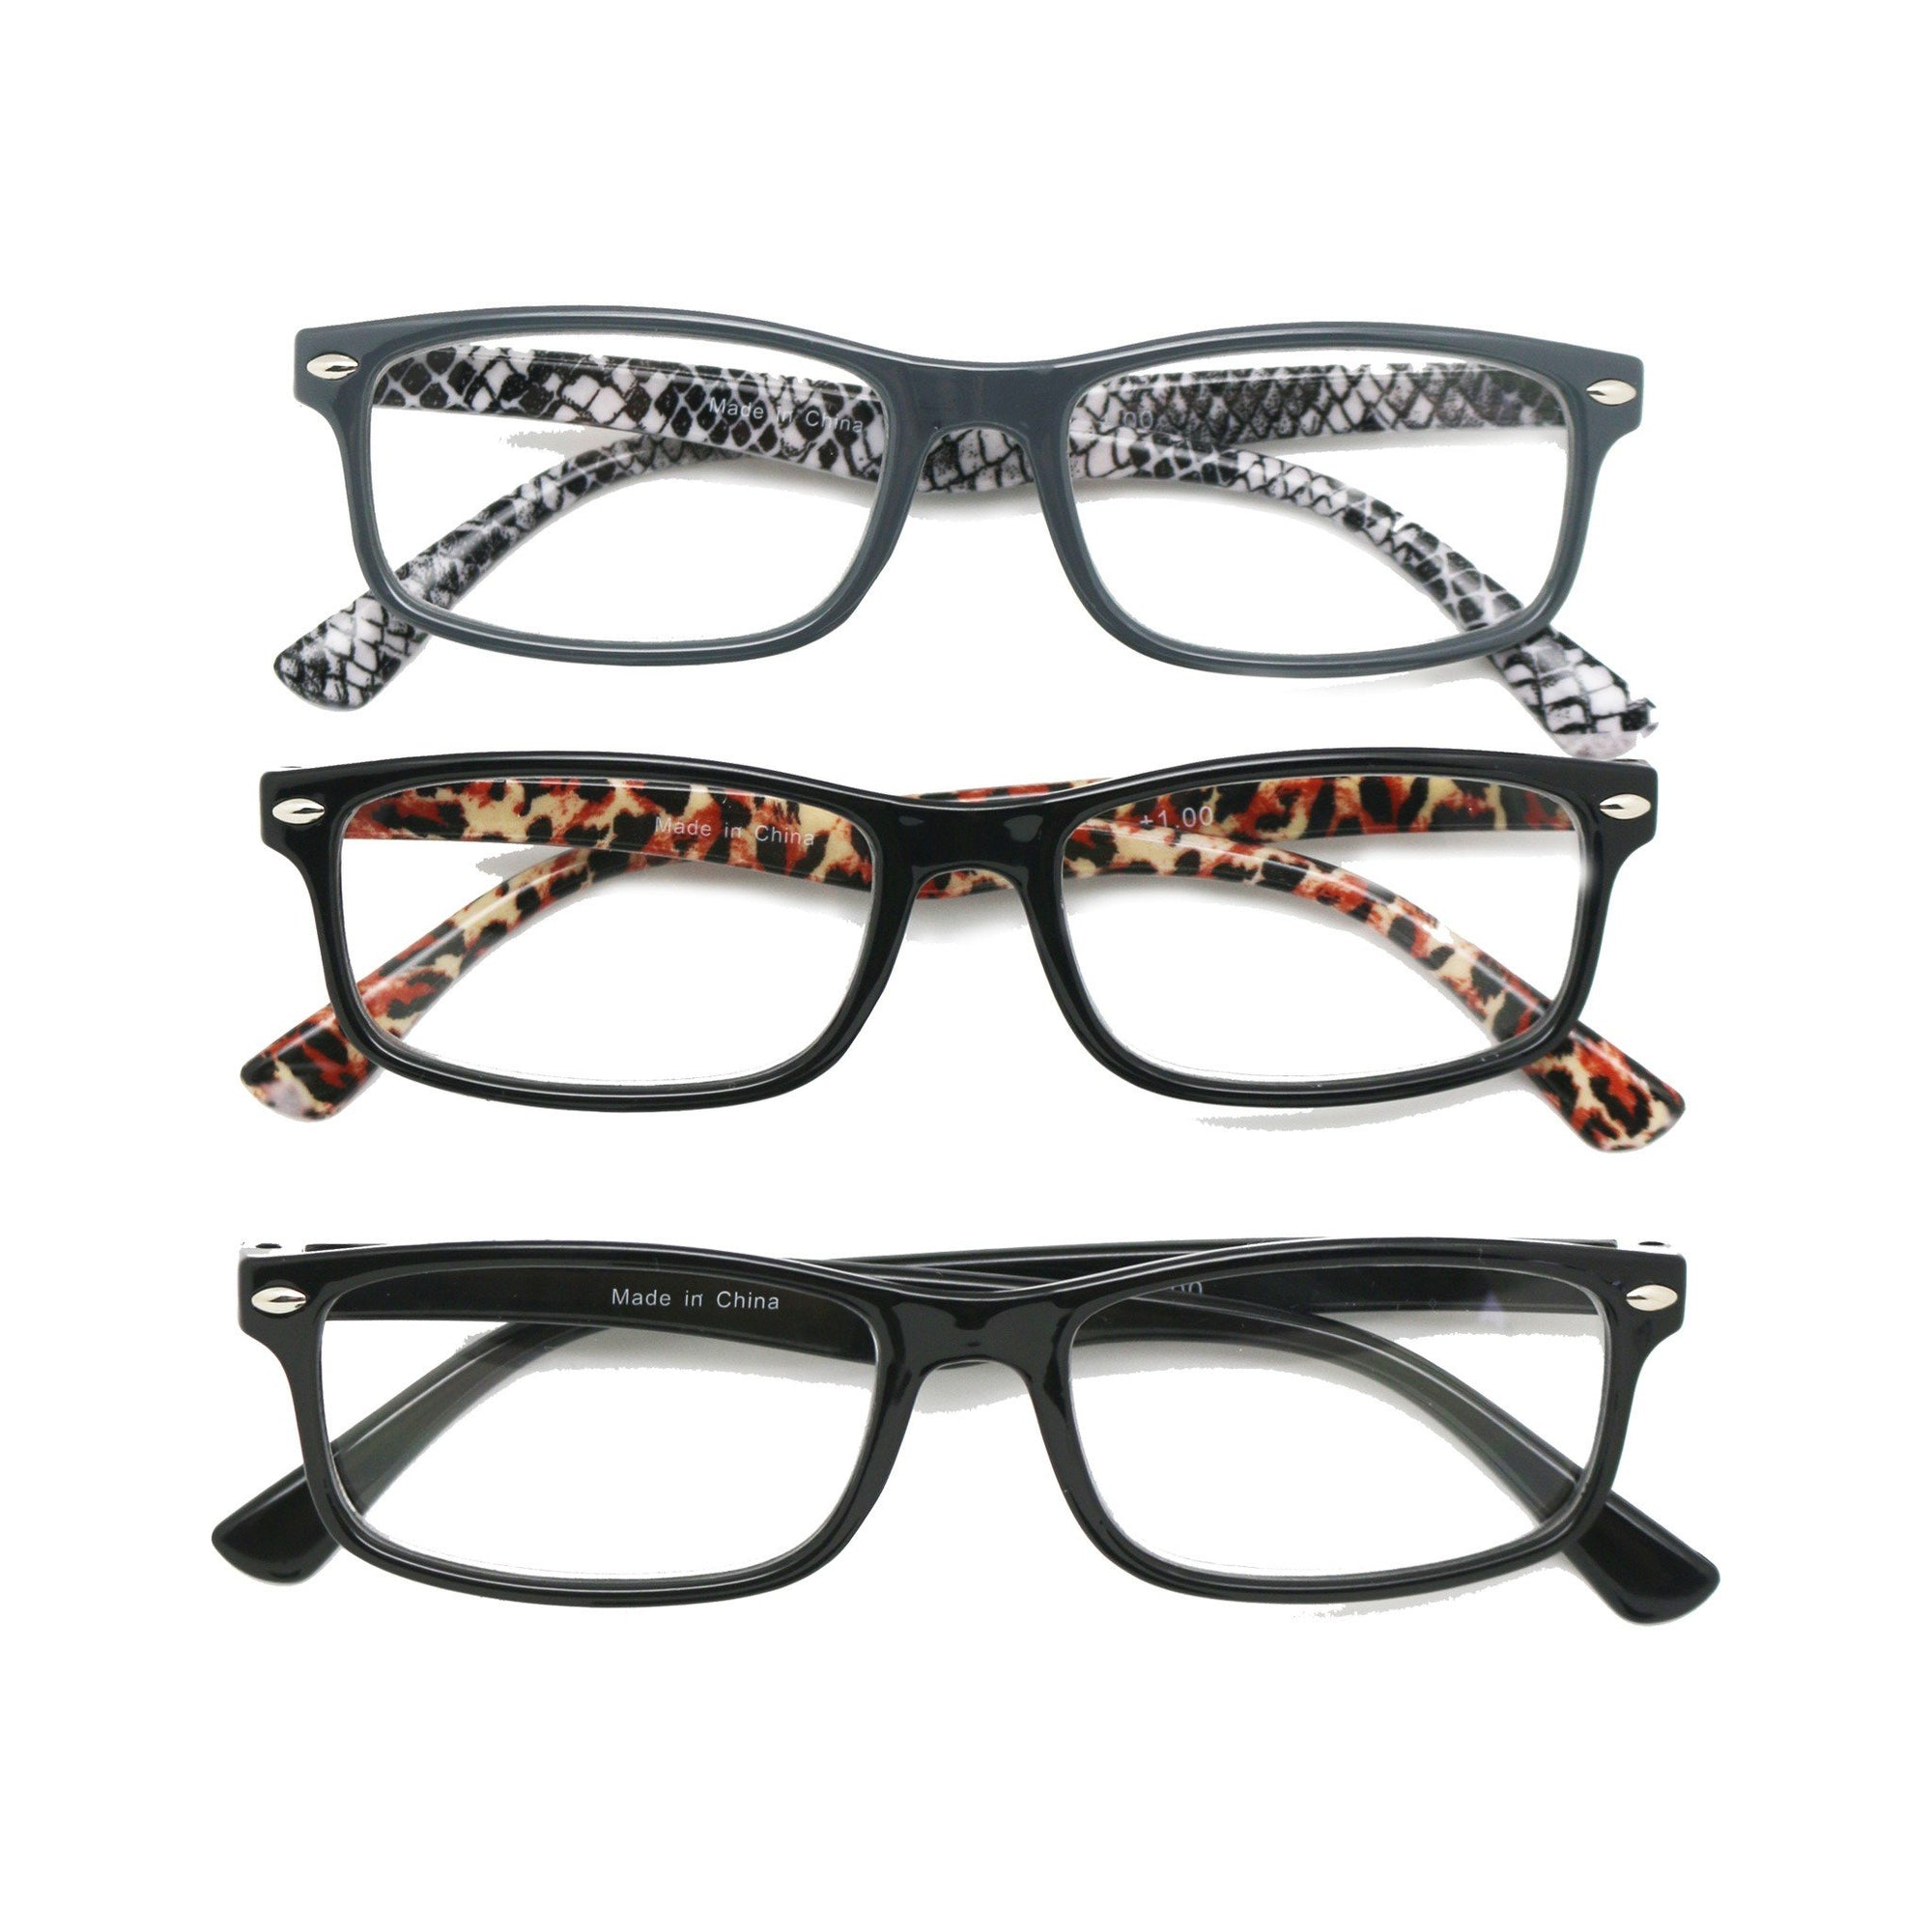 Casa Womens Reading Glasses +1.0 Magnification 3pk